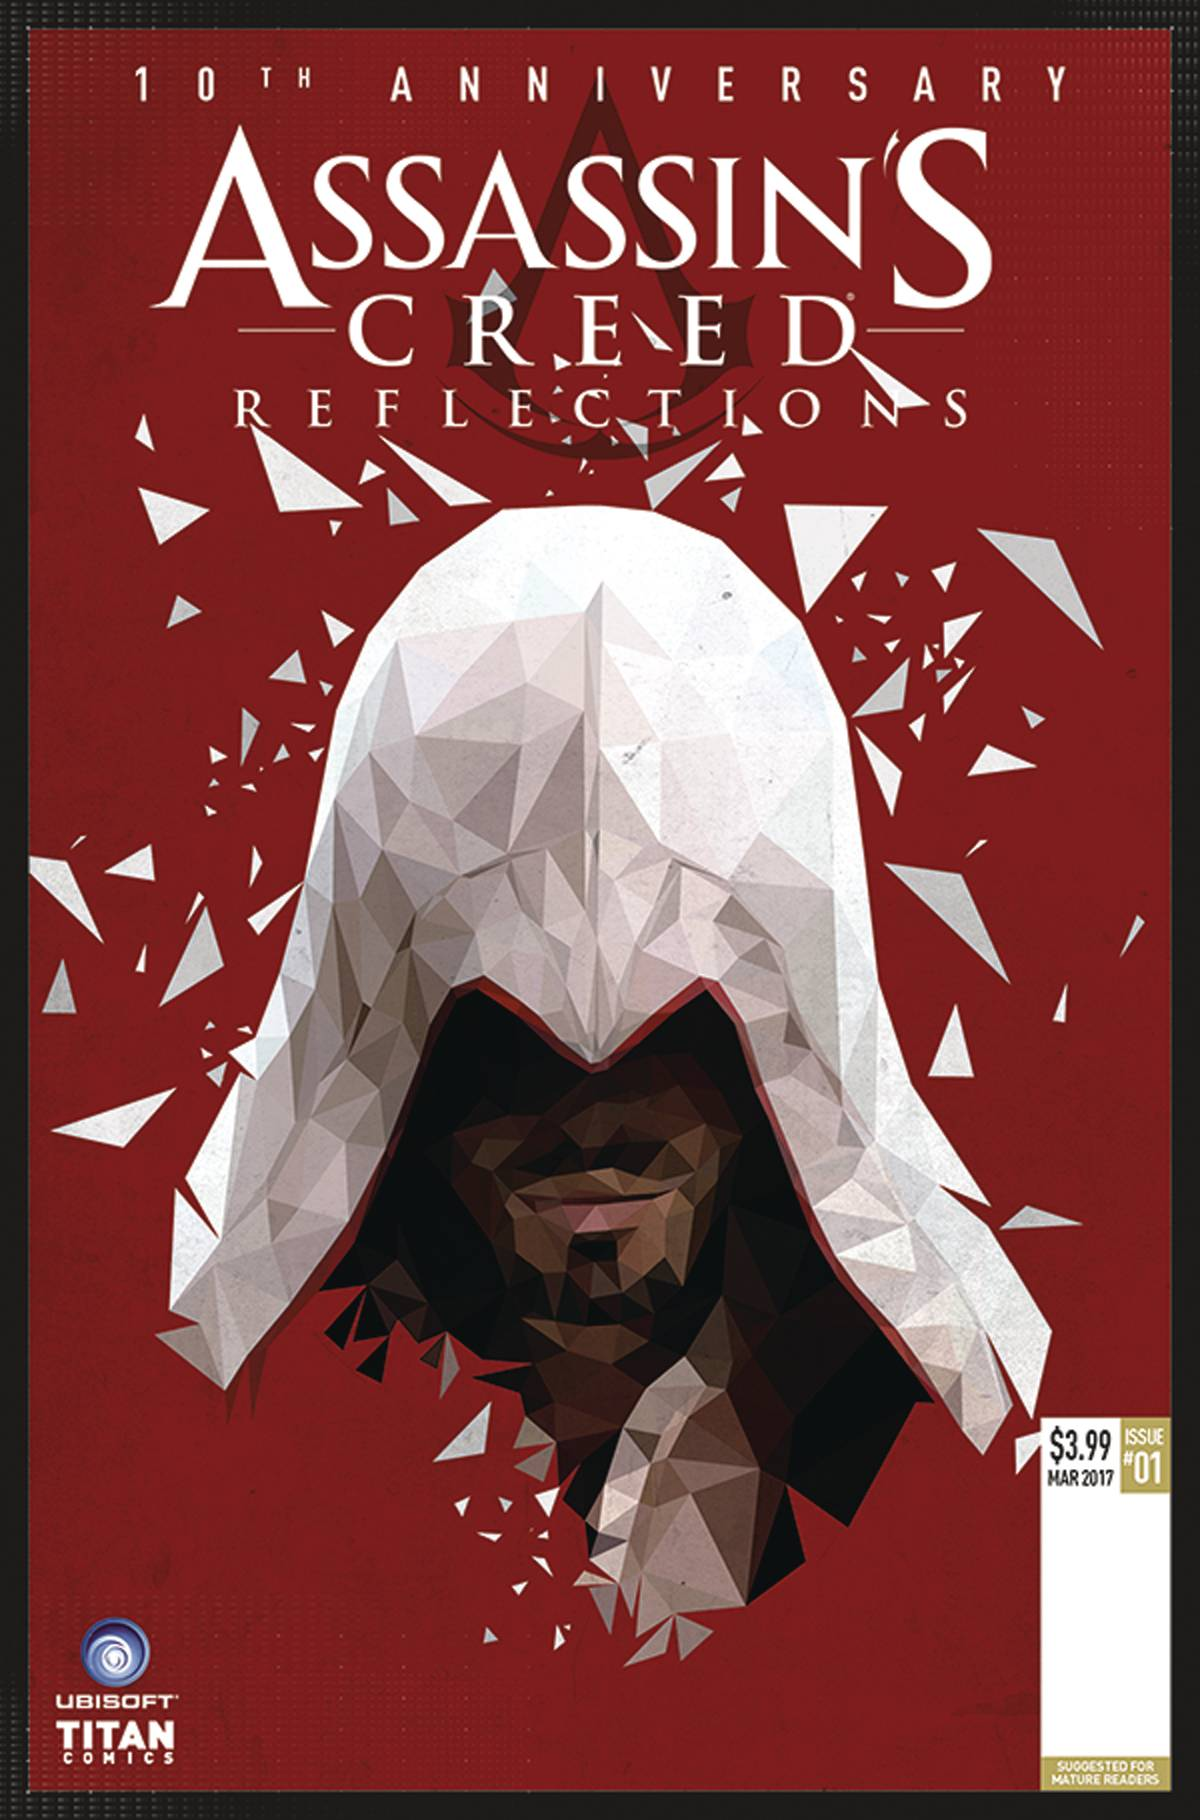 ASSASSINS CREED REFLECTIONS #1 (OF 4) CVR F POLYGON